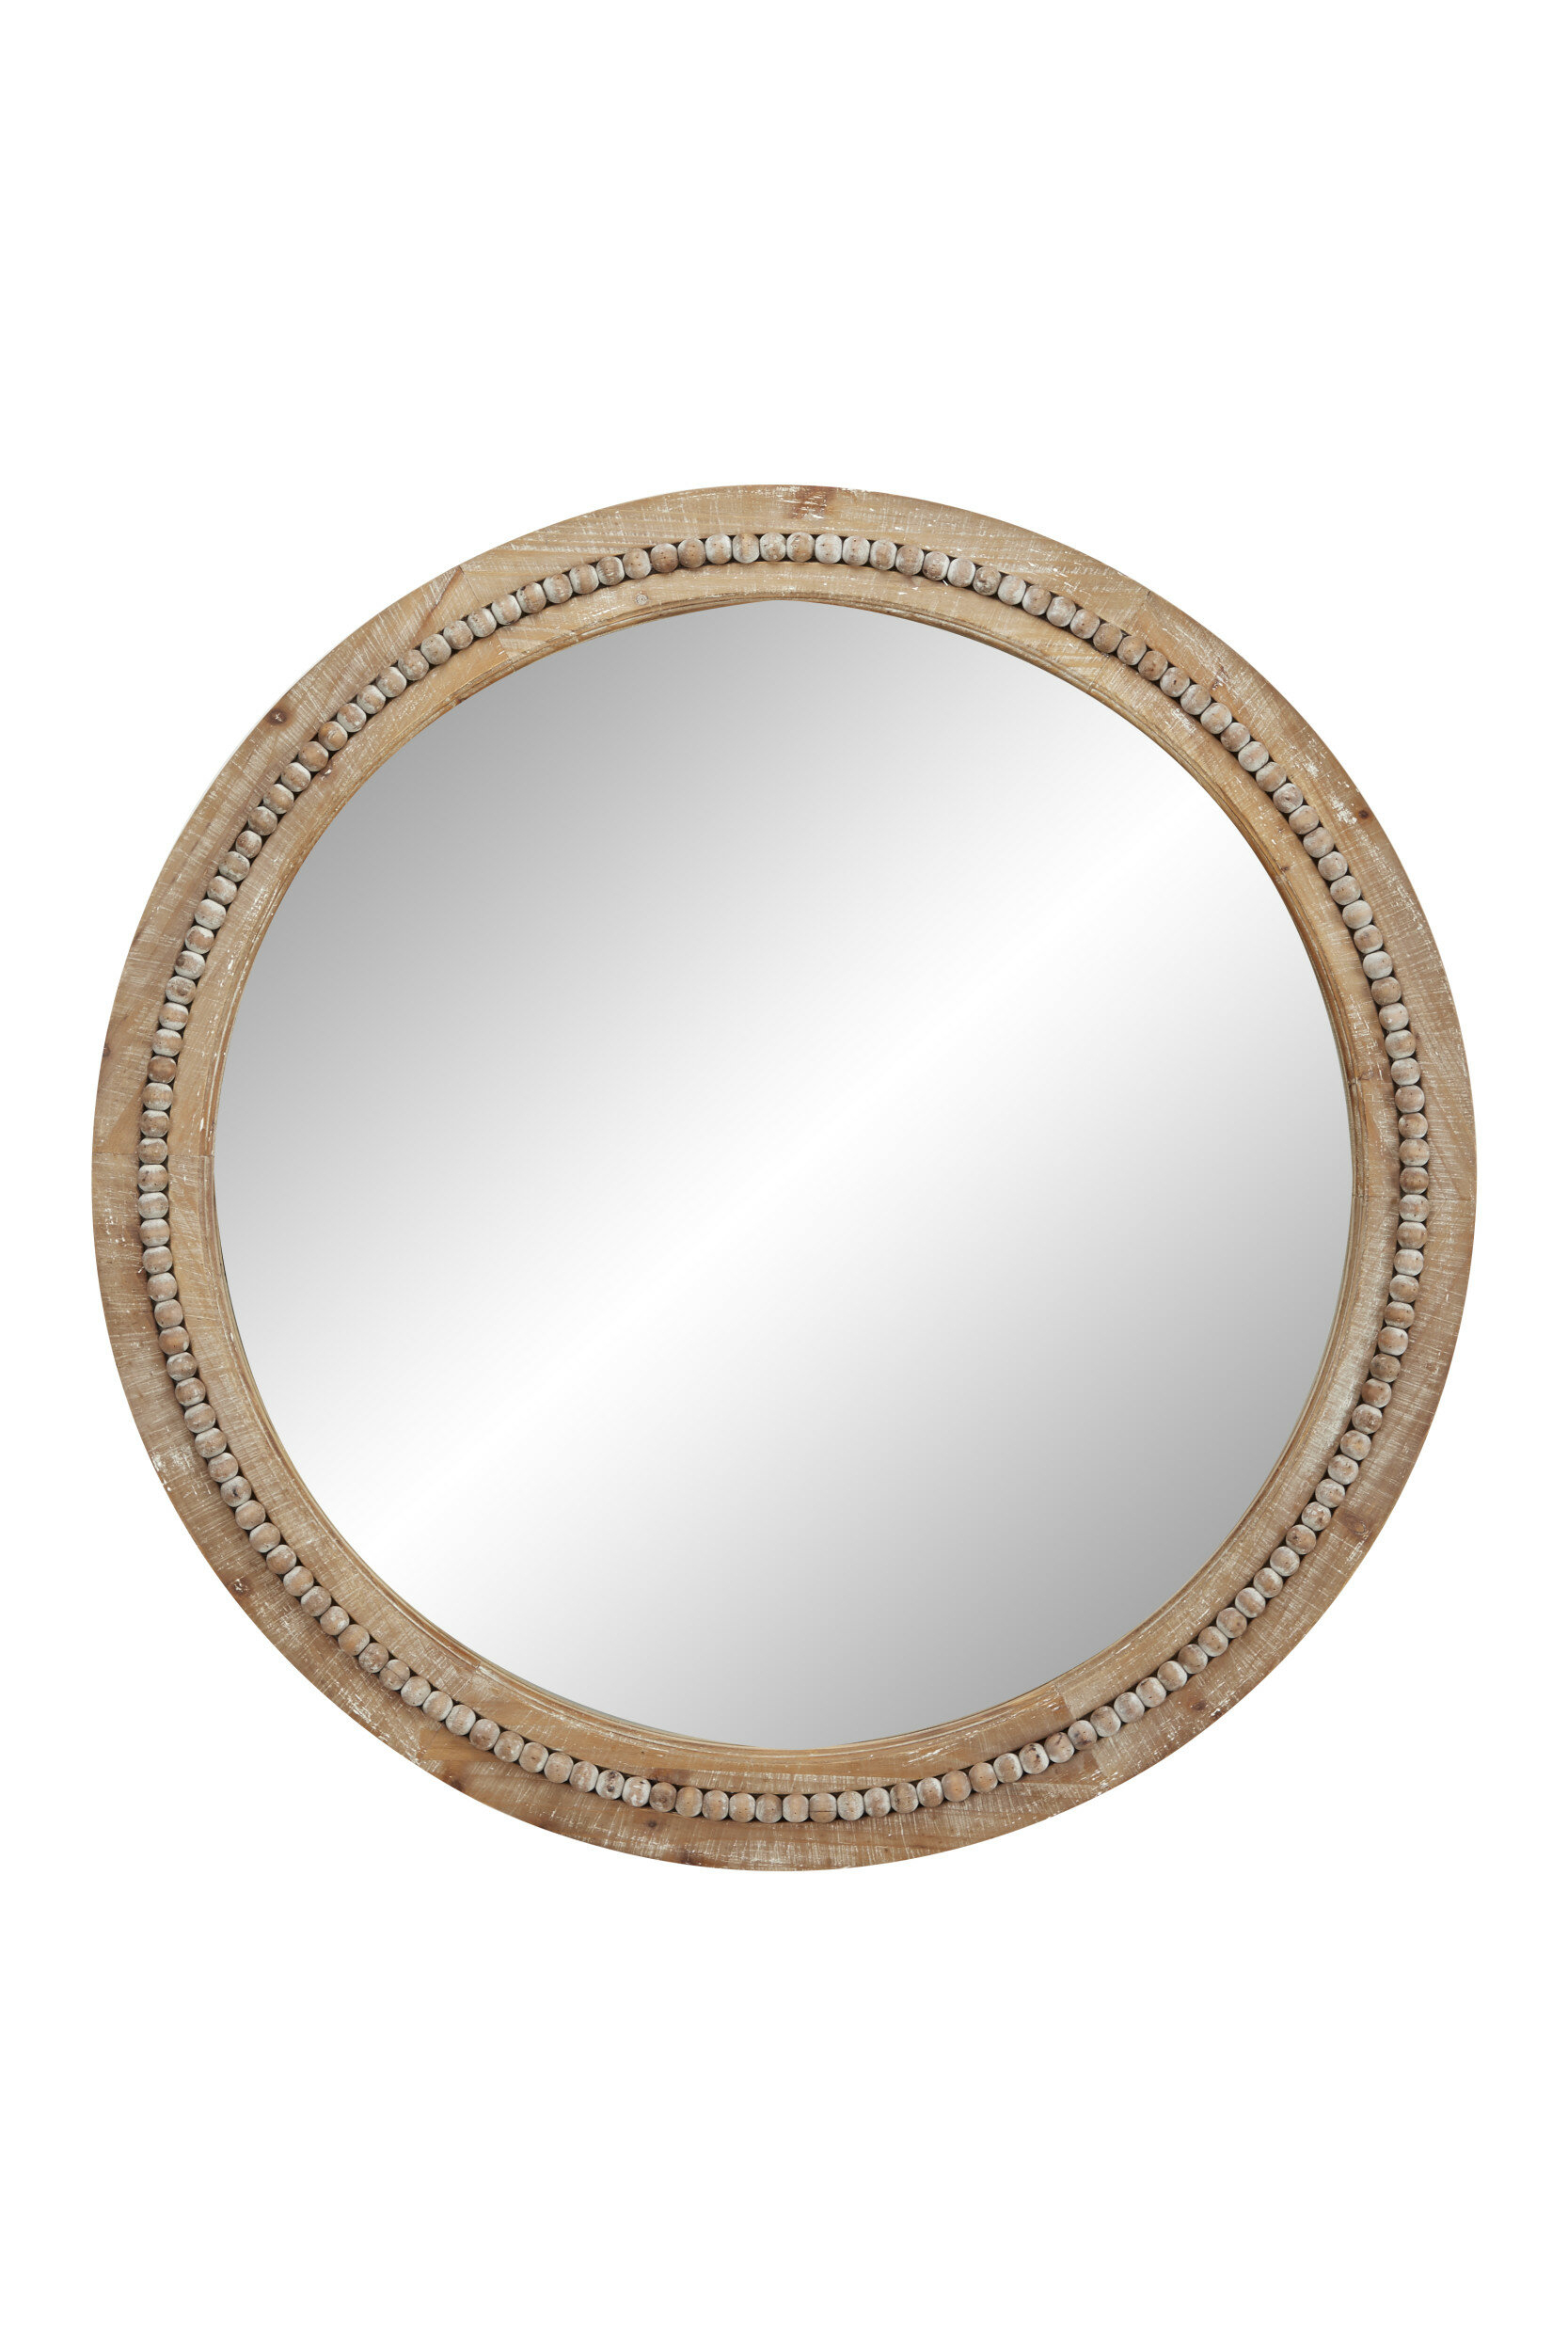 Oakton Round Wood Accent Mirror | Joss & Main Pertaining To Glen View Beaded Oval Traditional Accent Mirrors (View 9 of 20)